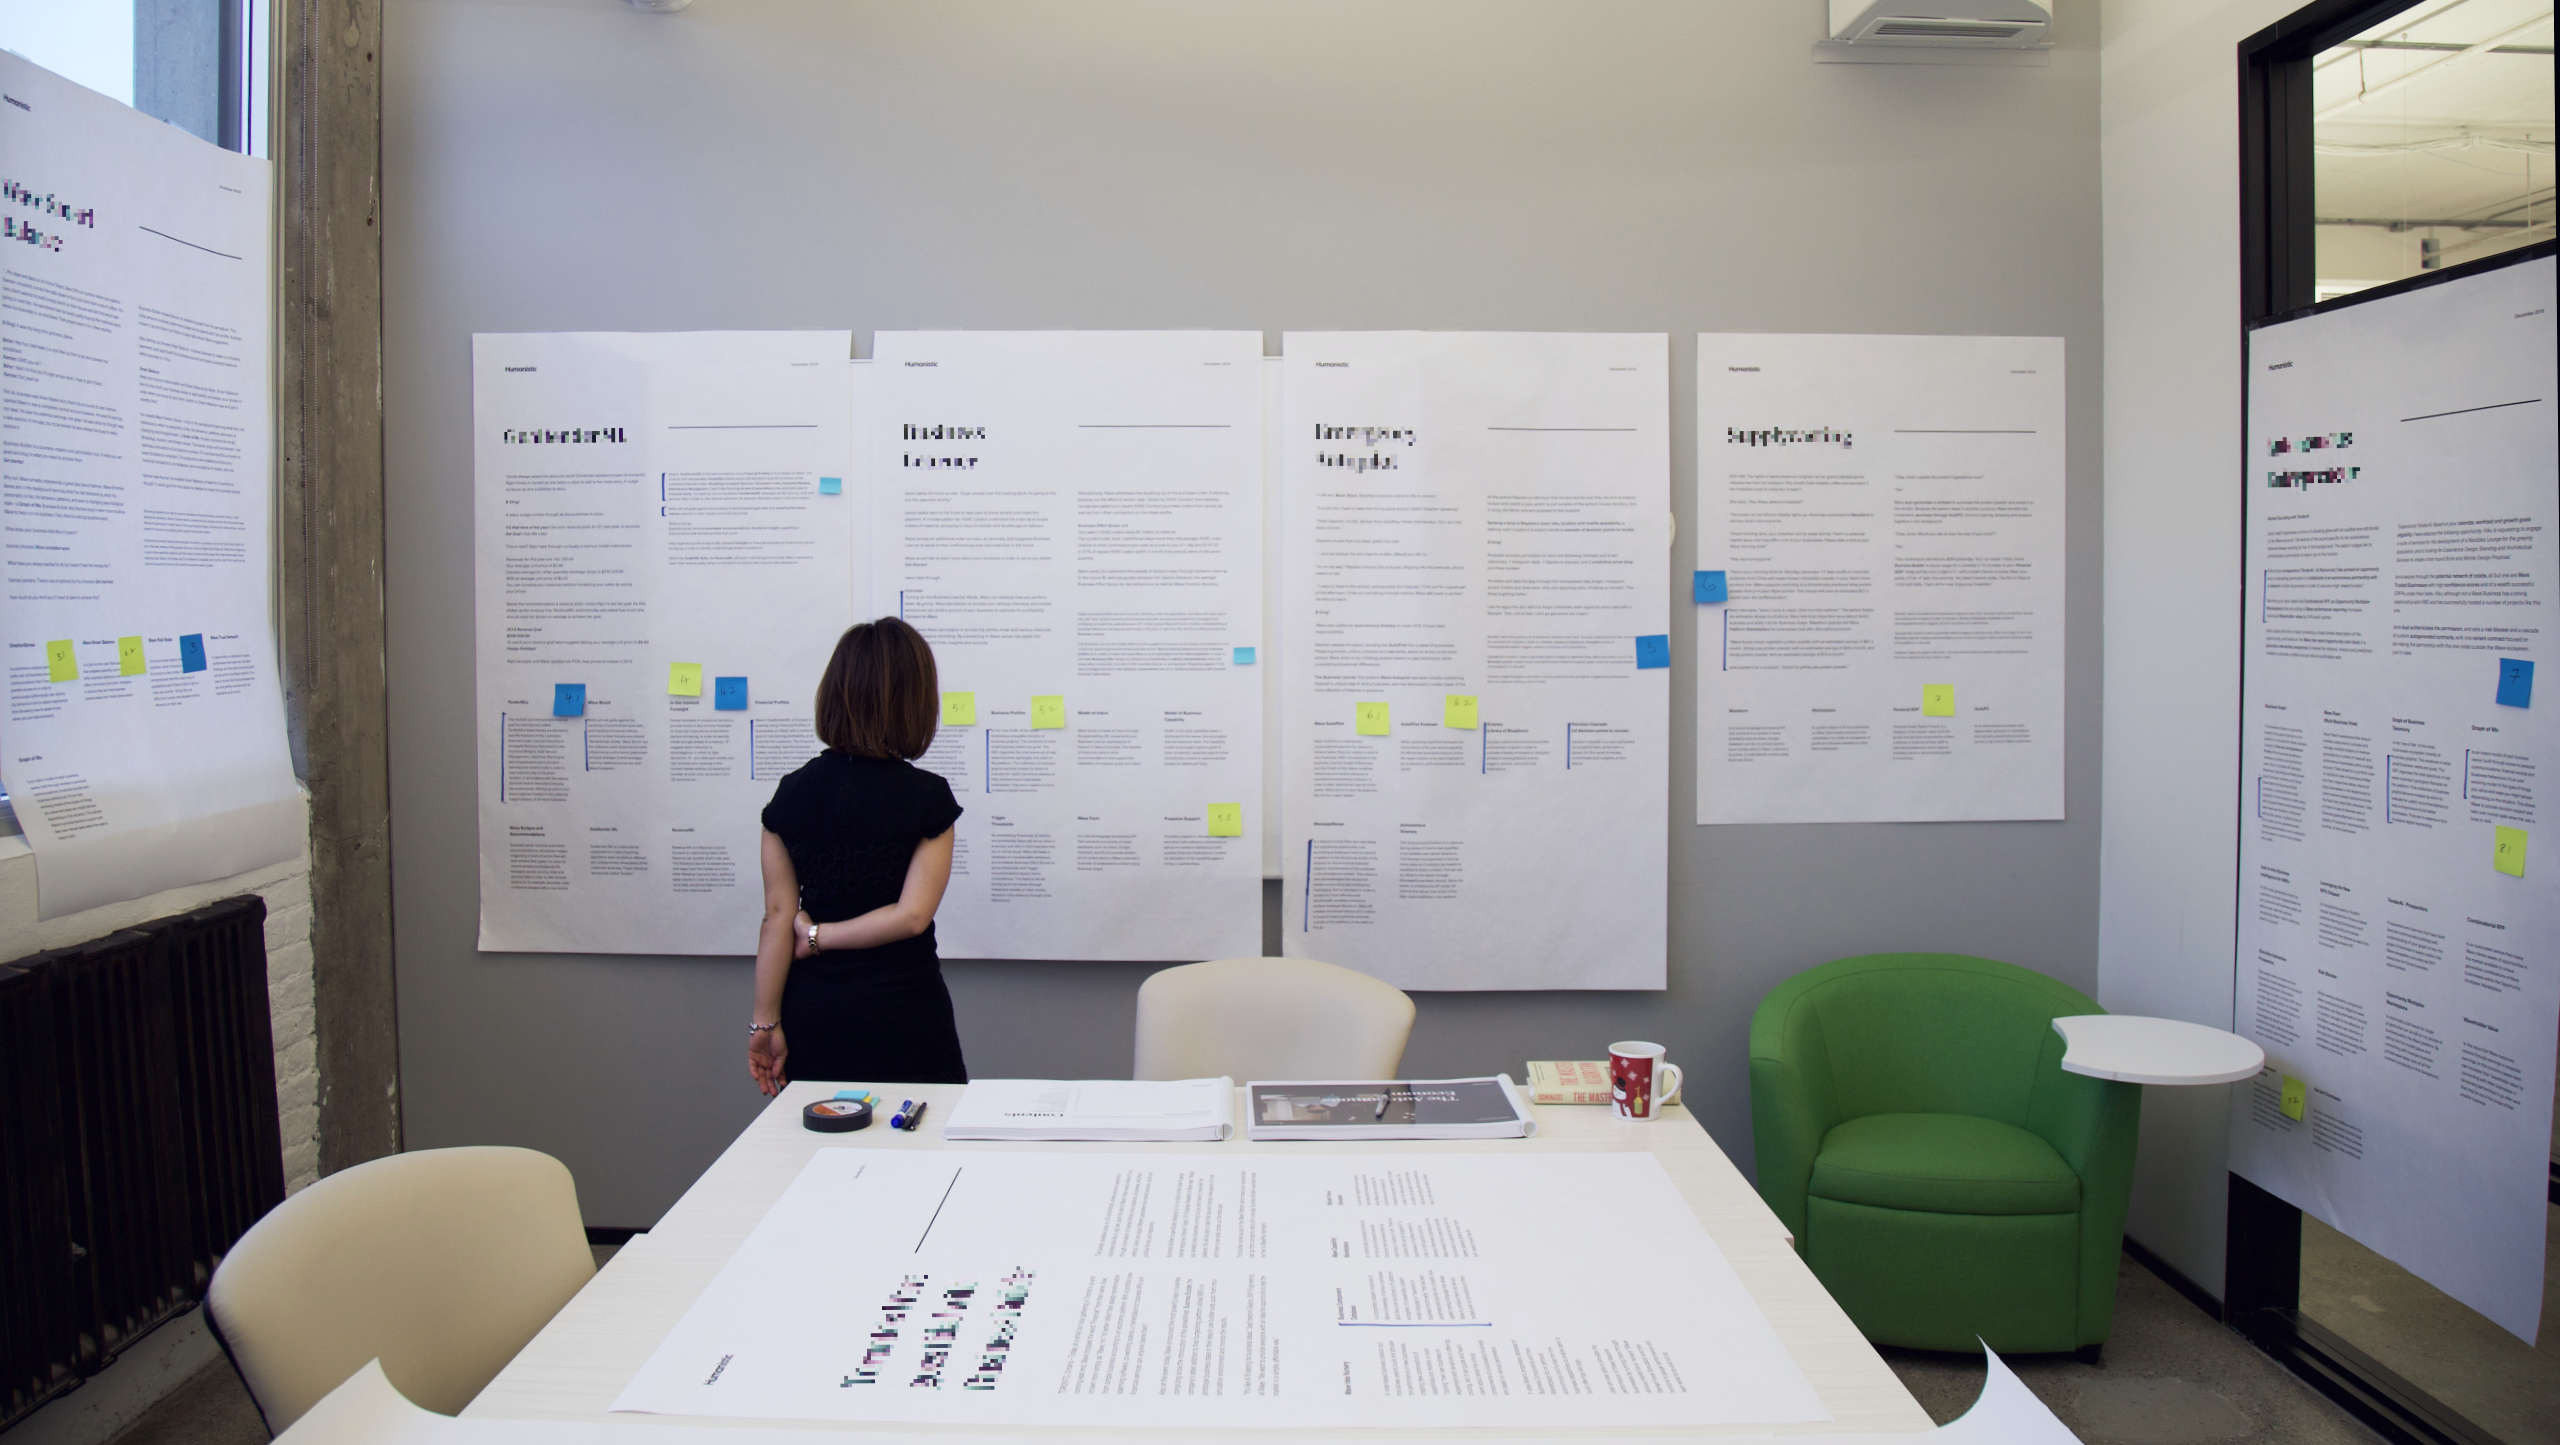 A woman stands in a board room looking at one of the many large poster project deliverables